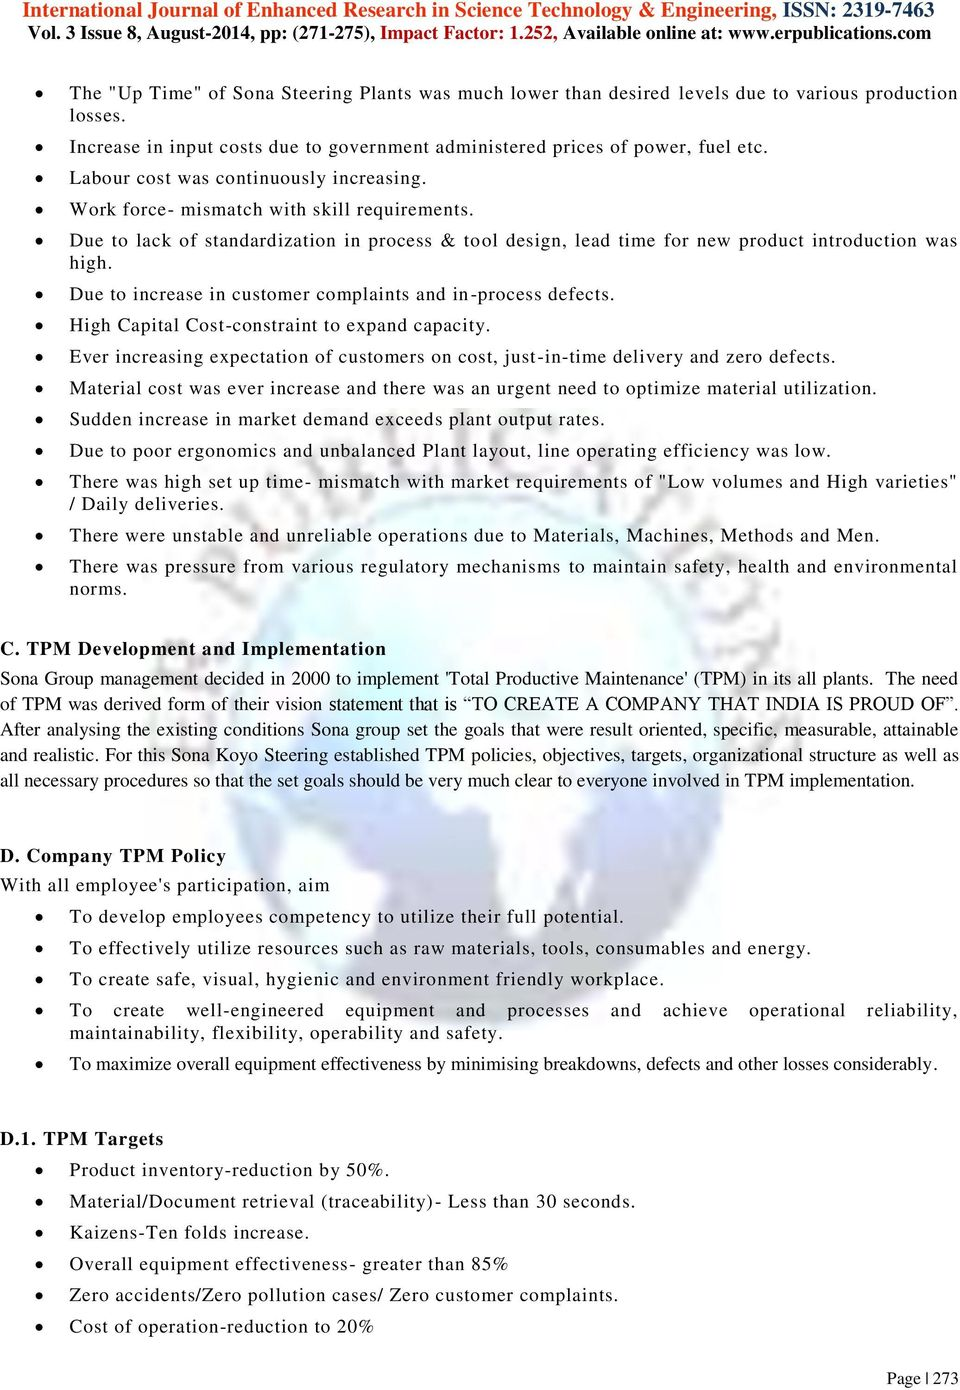 drones for delivery research paper pdf